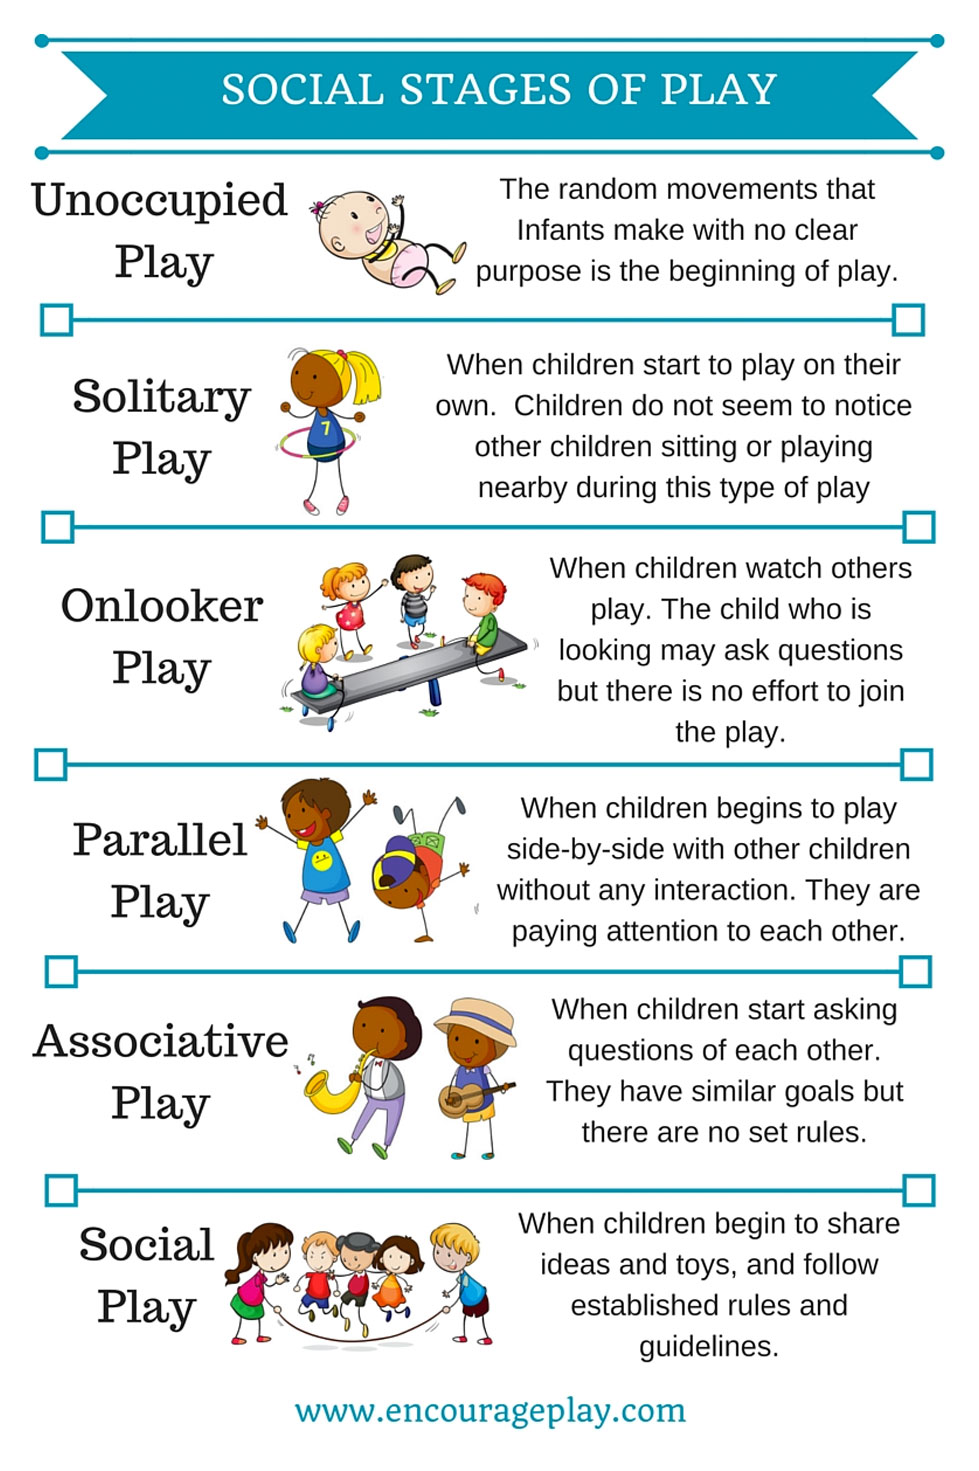 childminding-ireland-social-stages-of-play